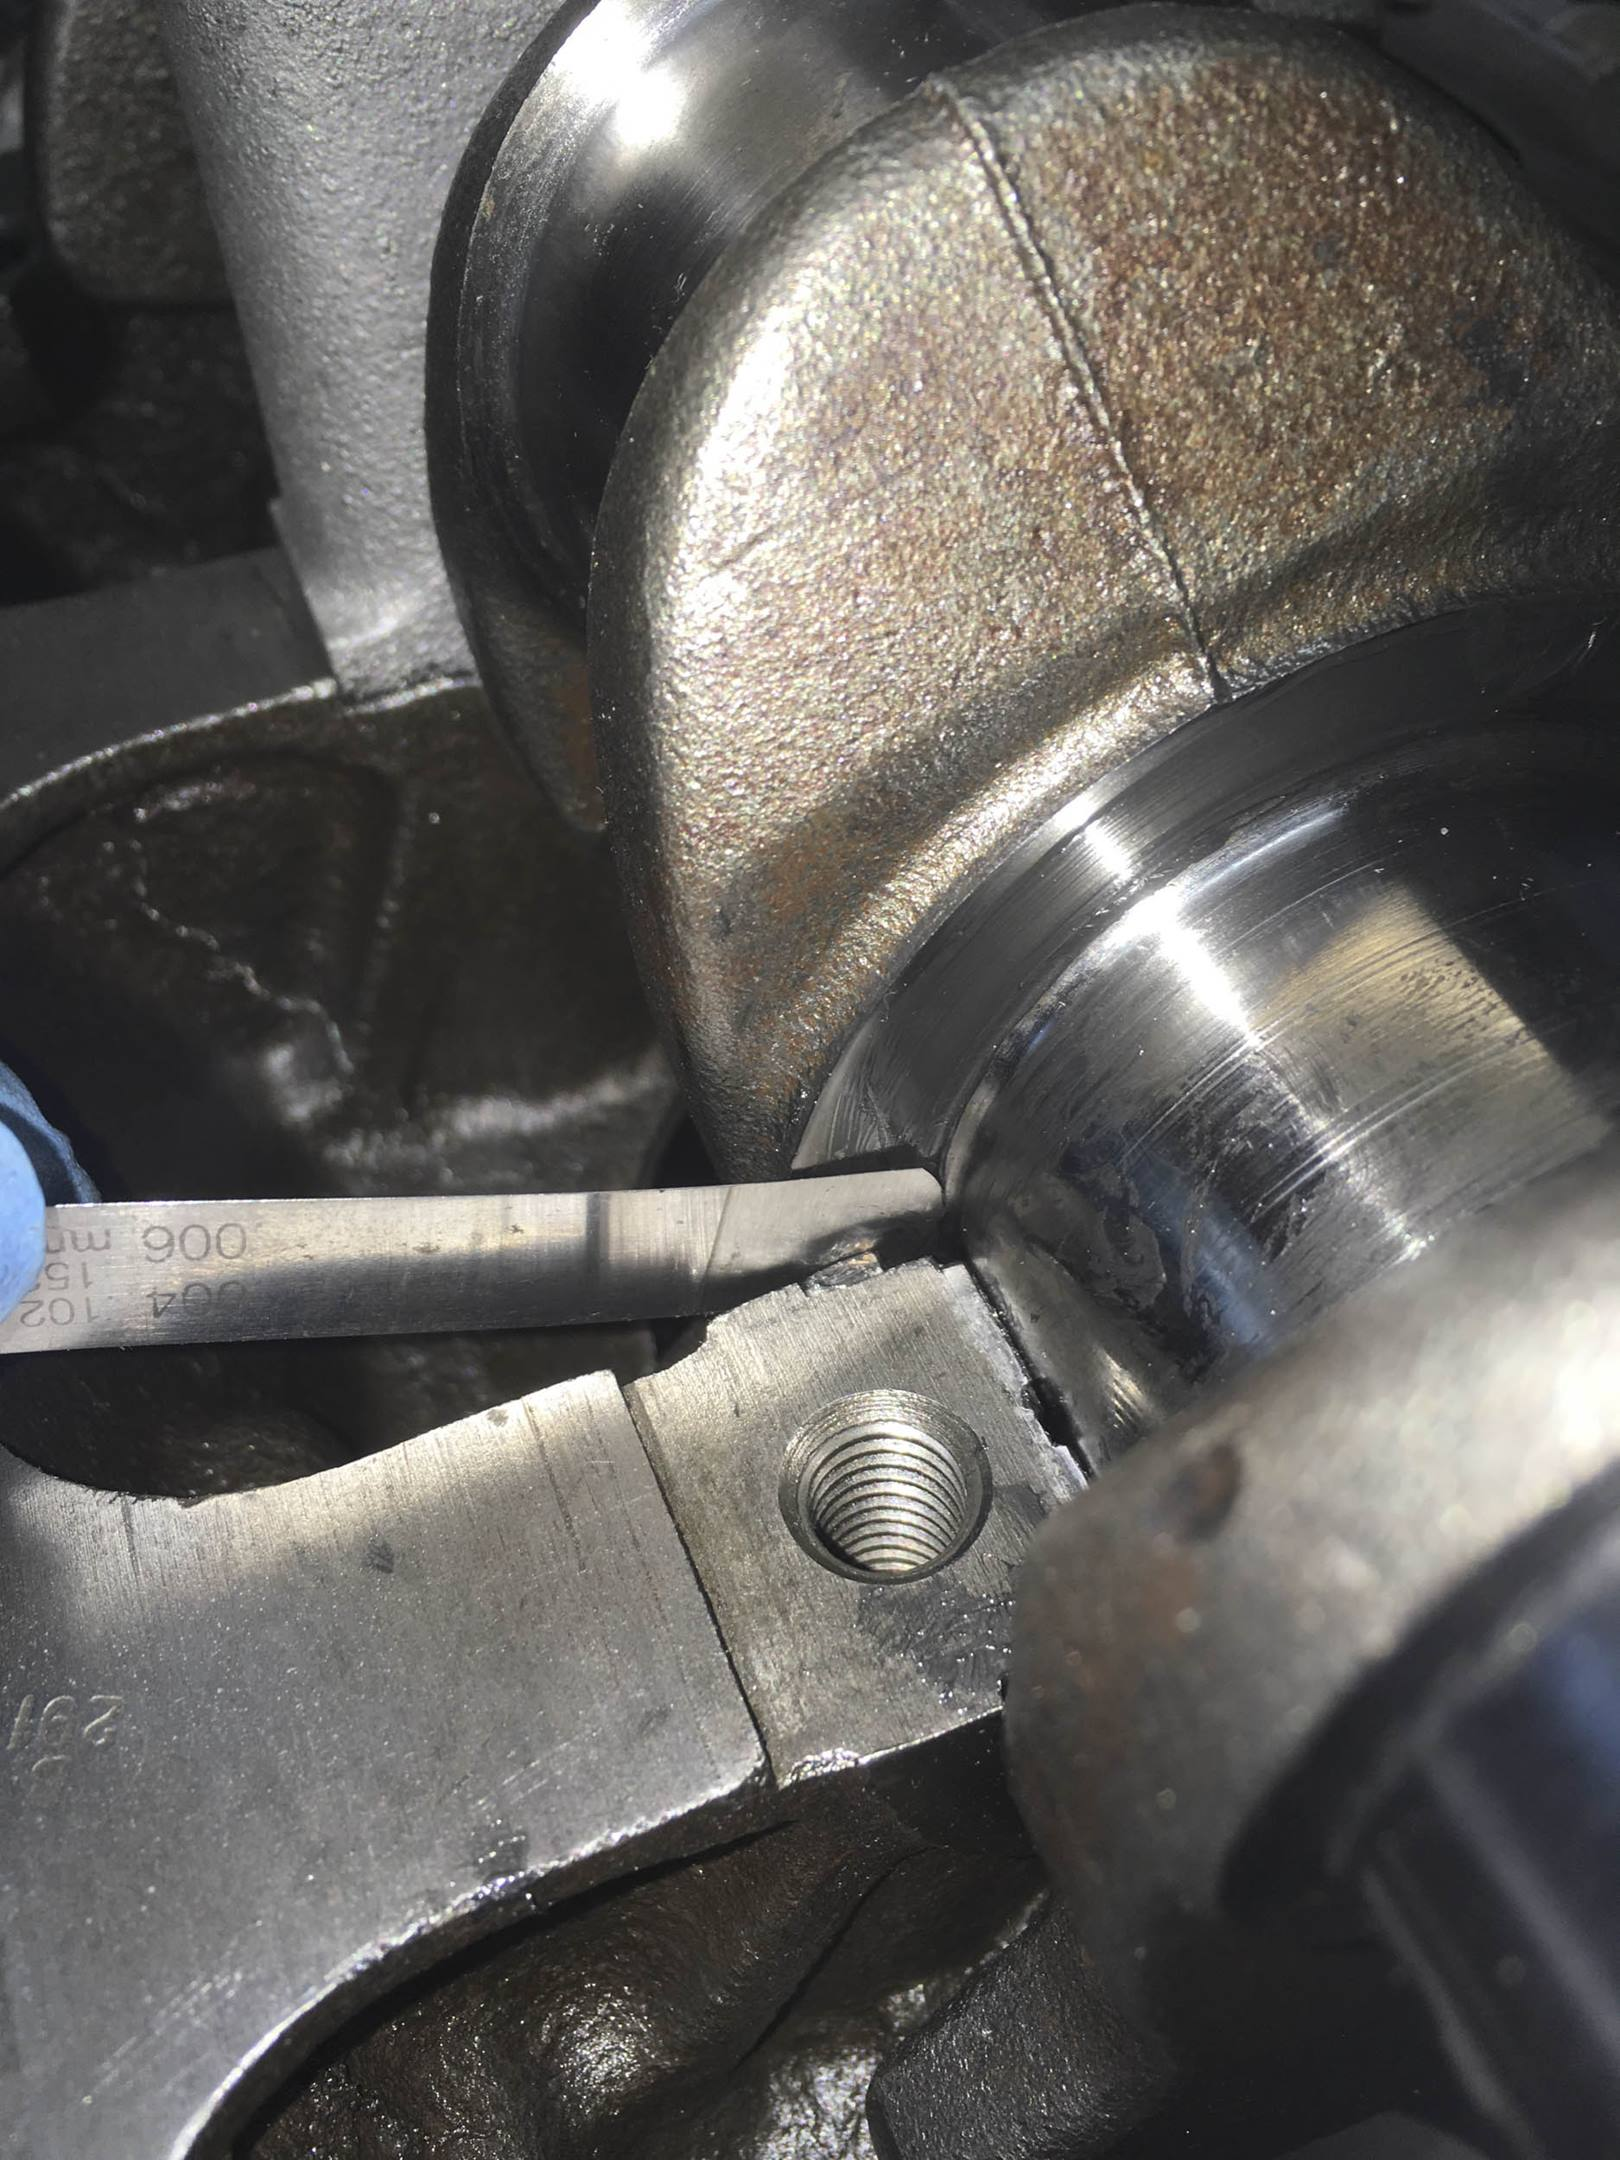 A first cut at measuring crankshaft float with a feeler gauge between the thrust washer and crankshaft thrust surface. Light score marks described above are clearly visible although the journal face is actually smooth and polished.